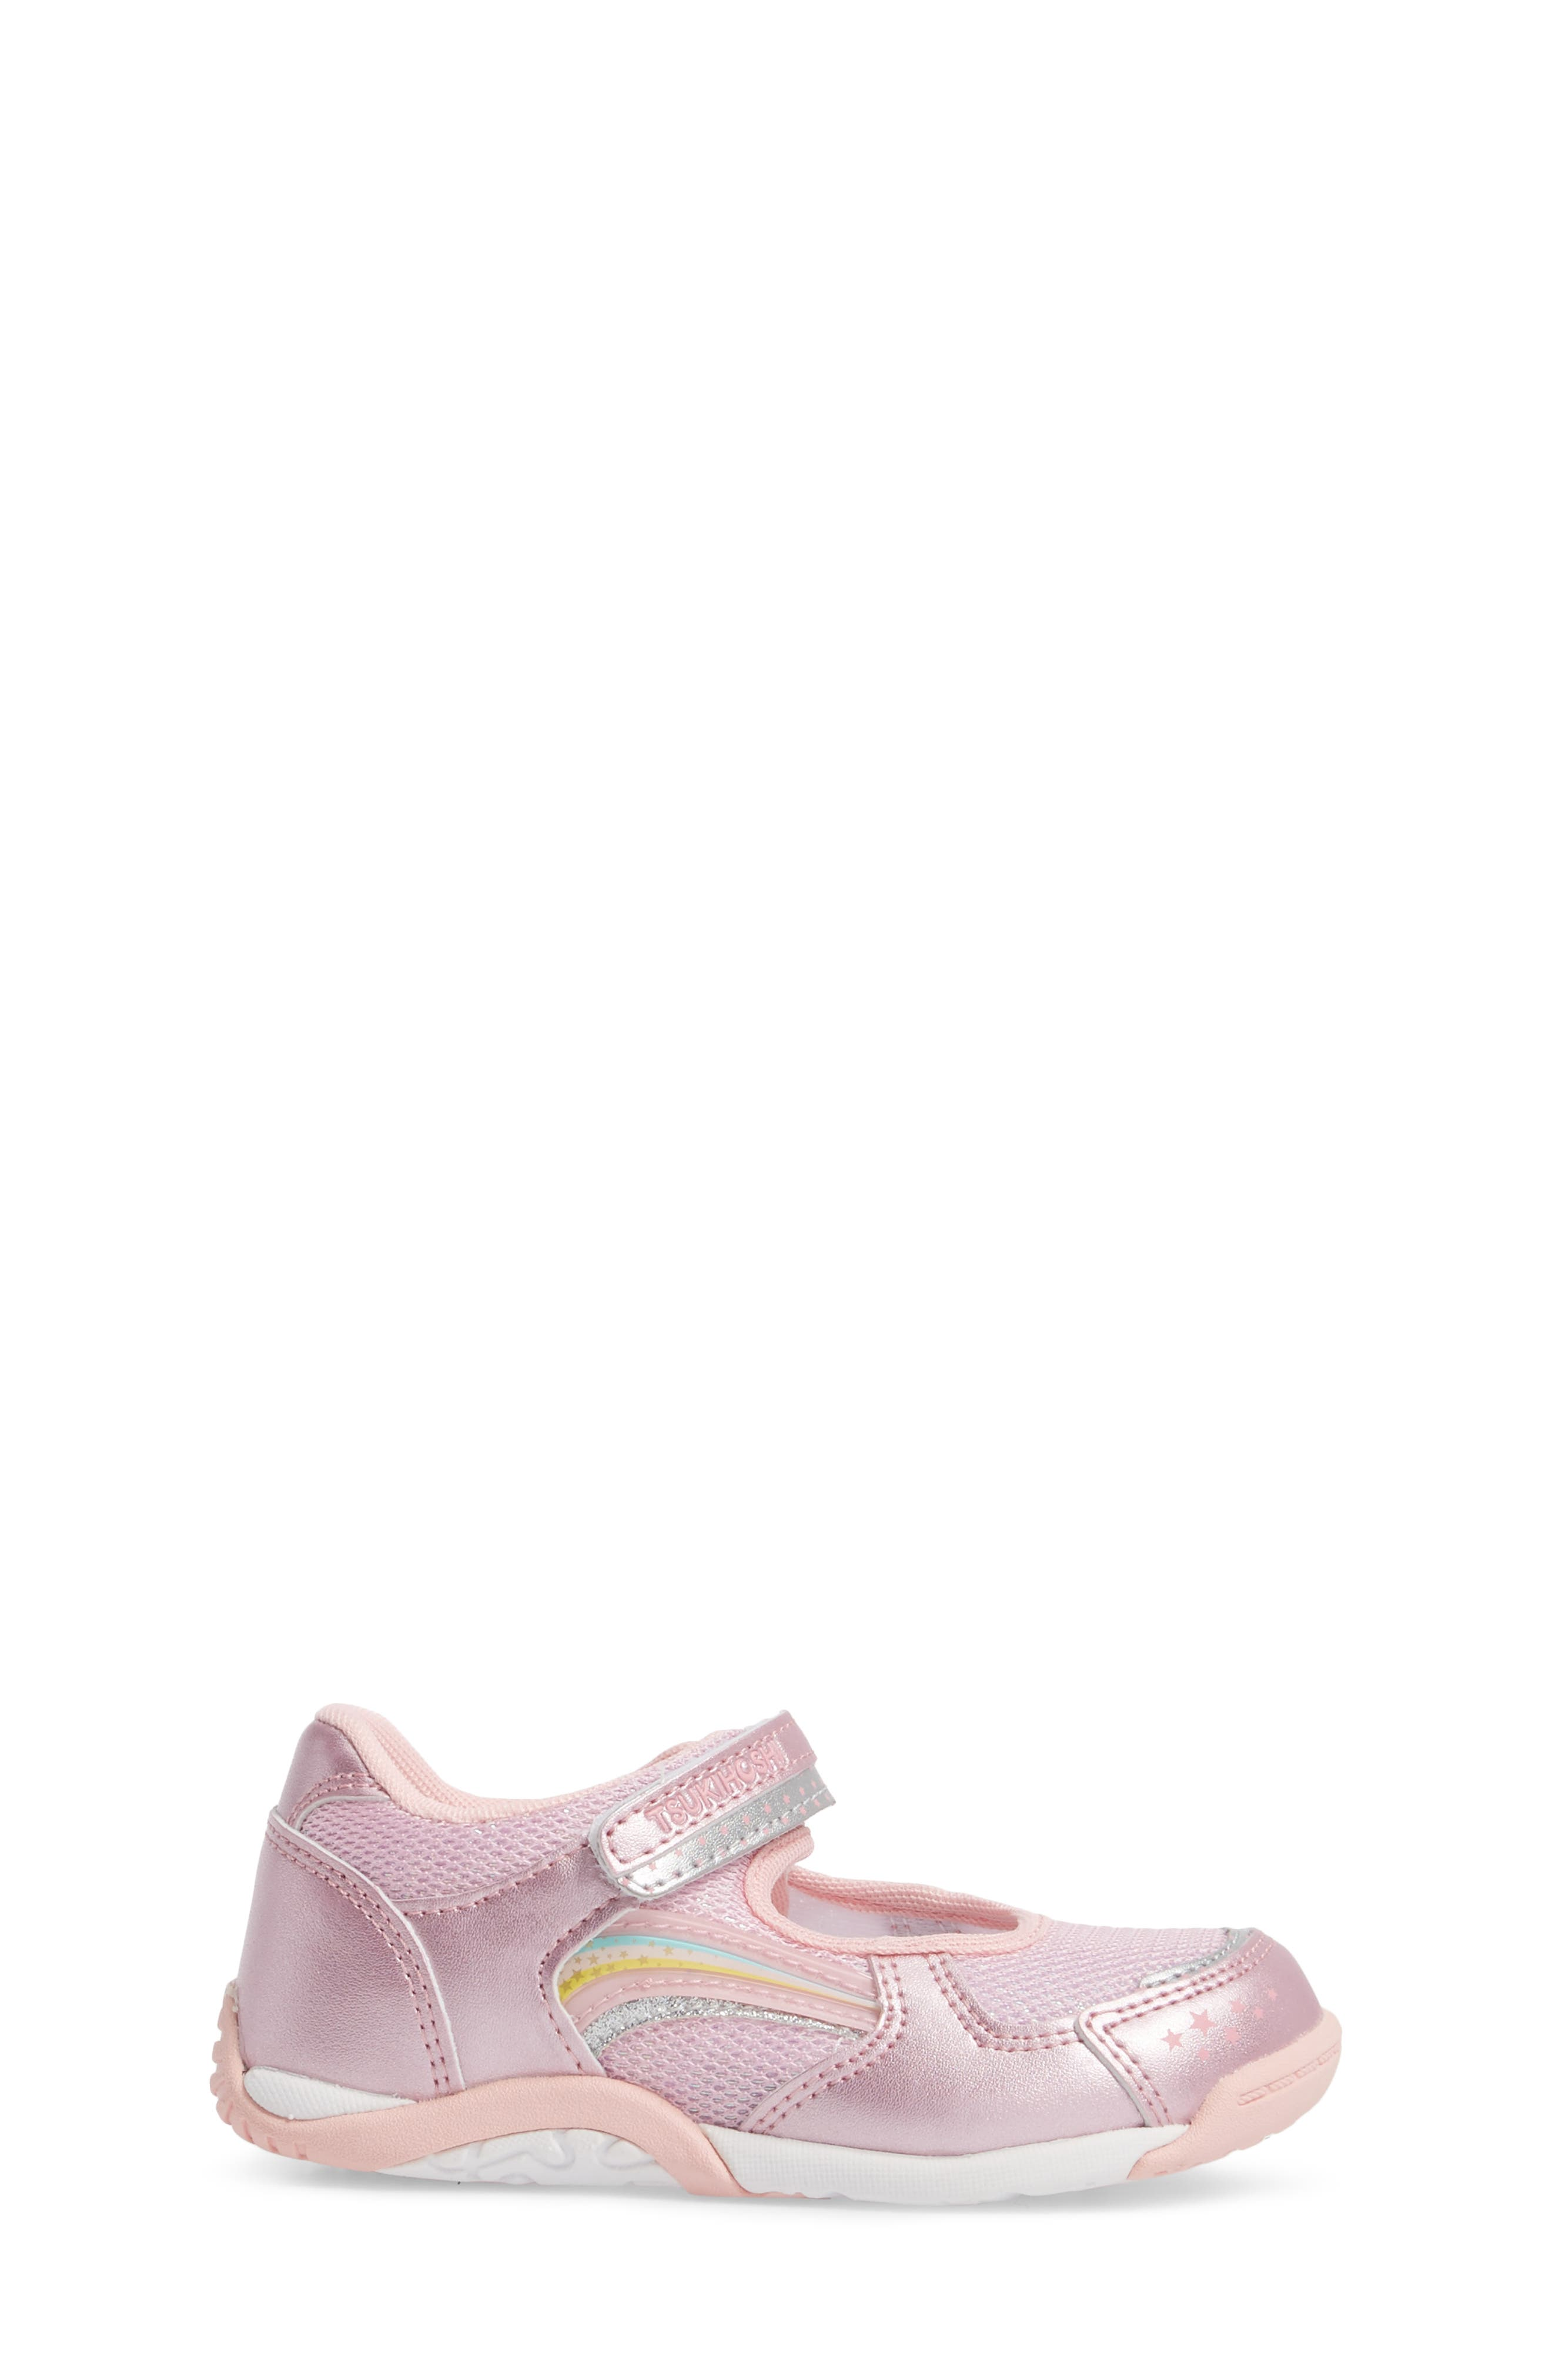 Twinkle Washable Sneaker,                             Alternate thumbnail 3, color,                             Rose/ Pink